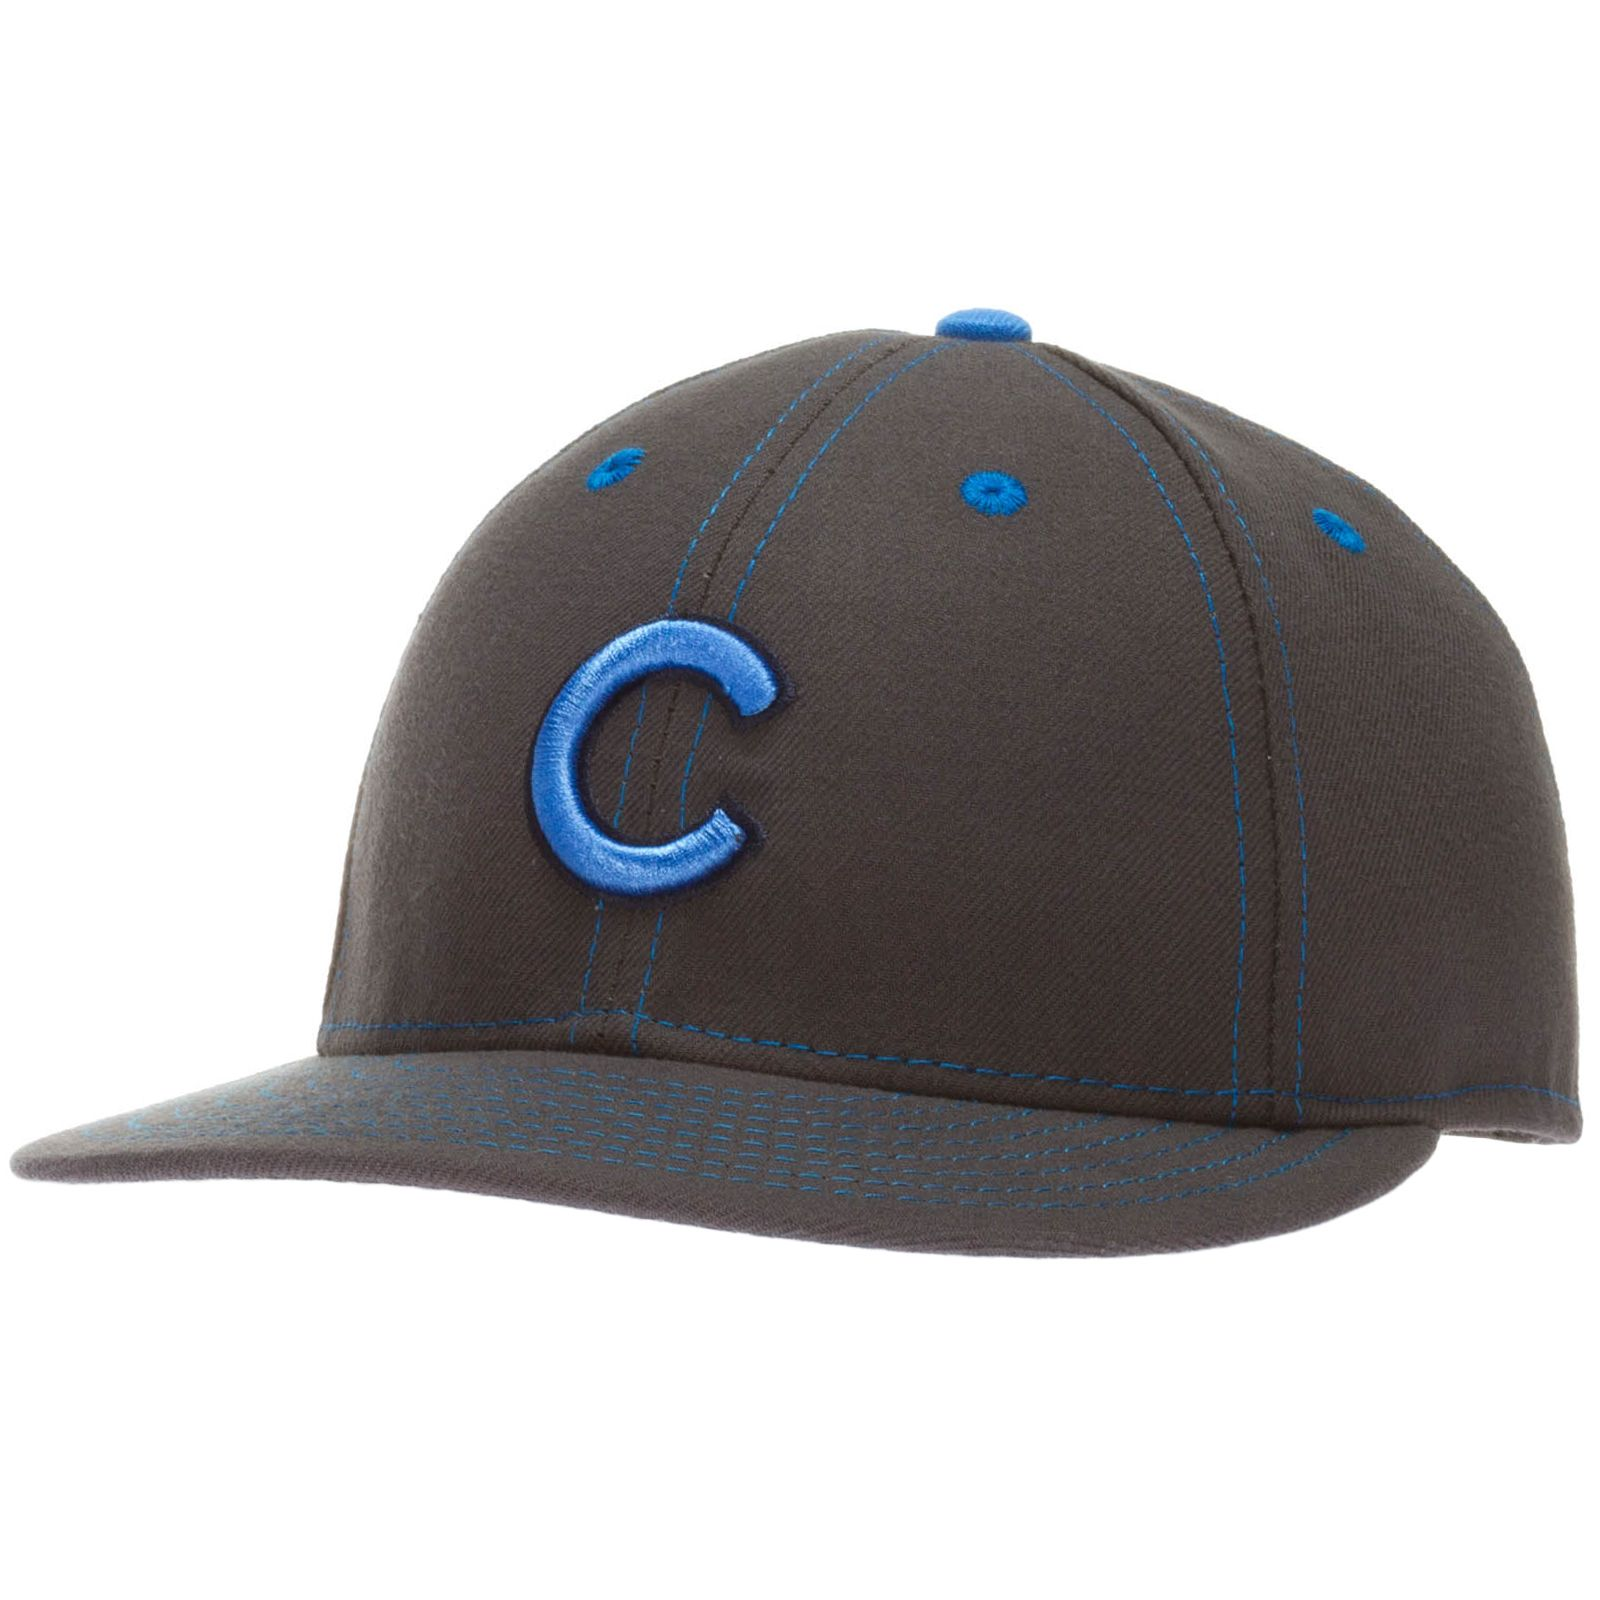 10cd3df541cad8 ireland new era fitted hats on sale xbox one 7c65d 28efc